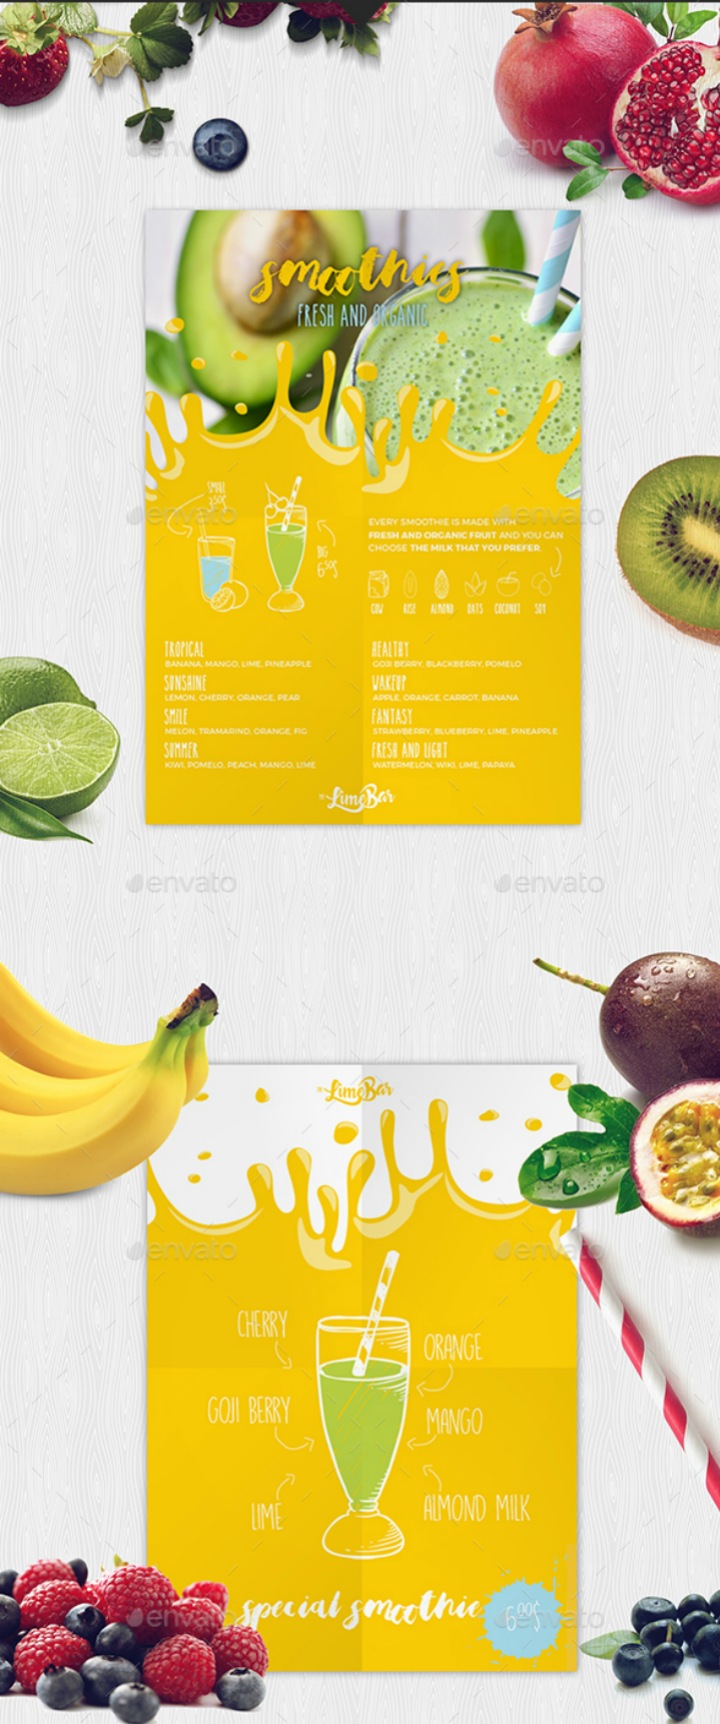 smoothies-indesign-menu-template